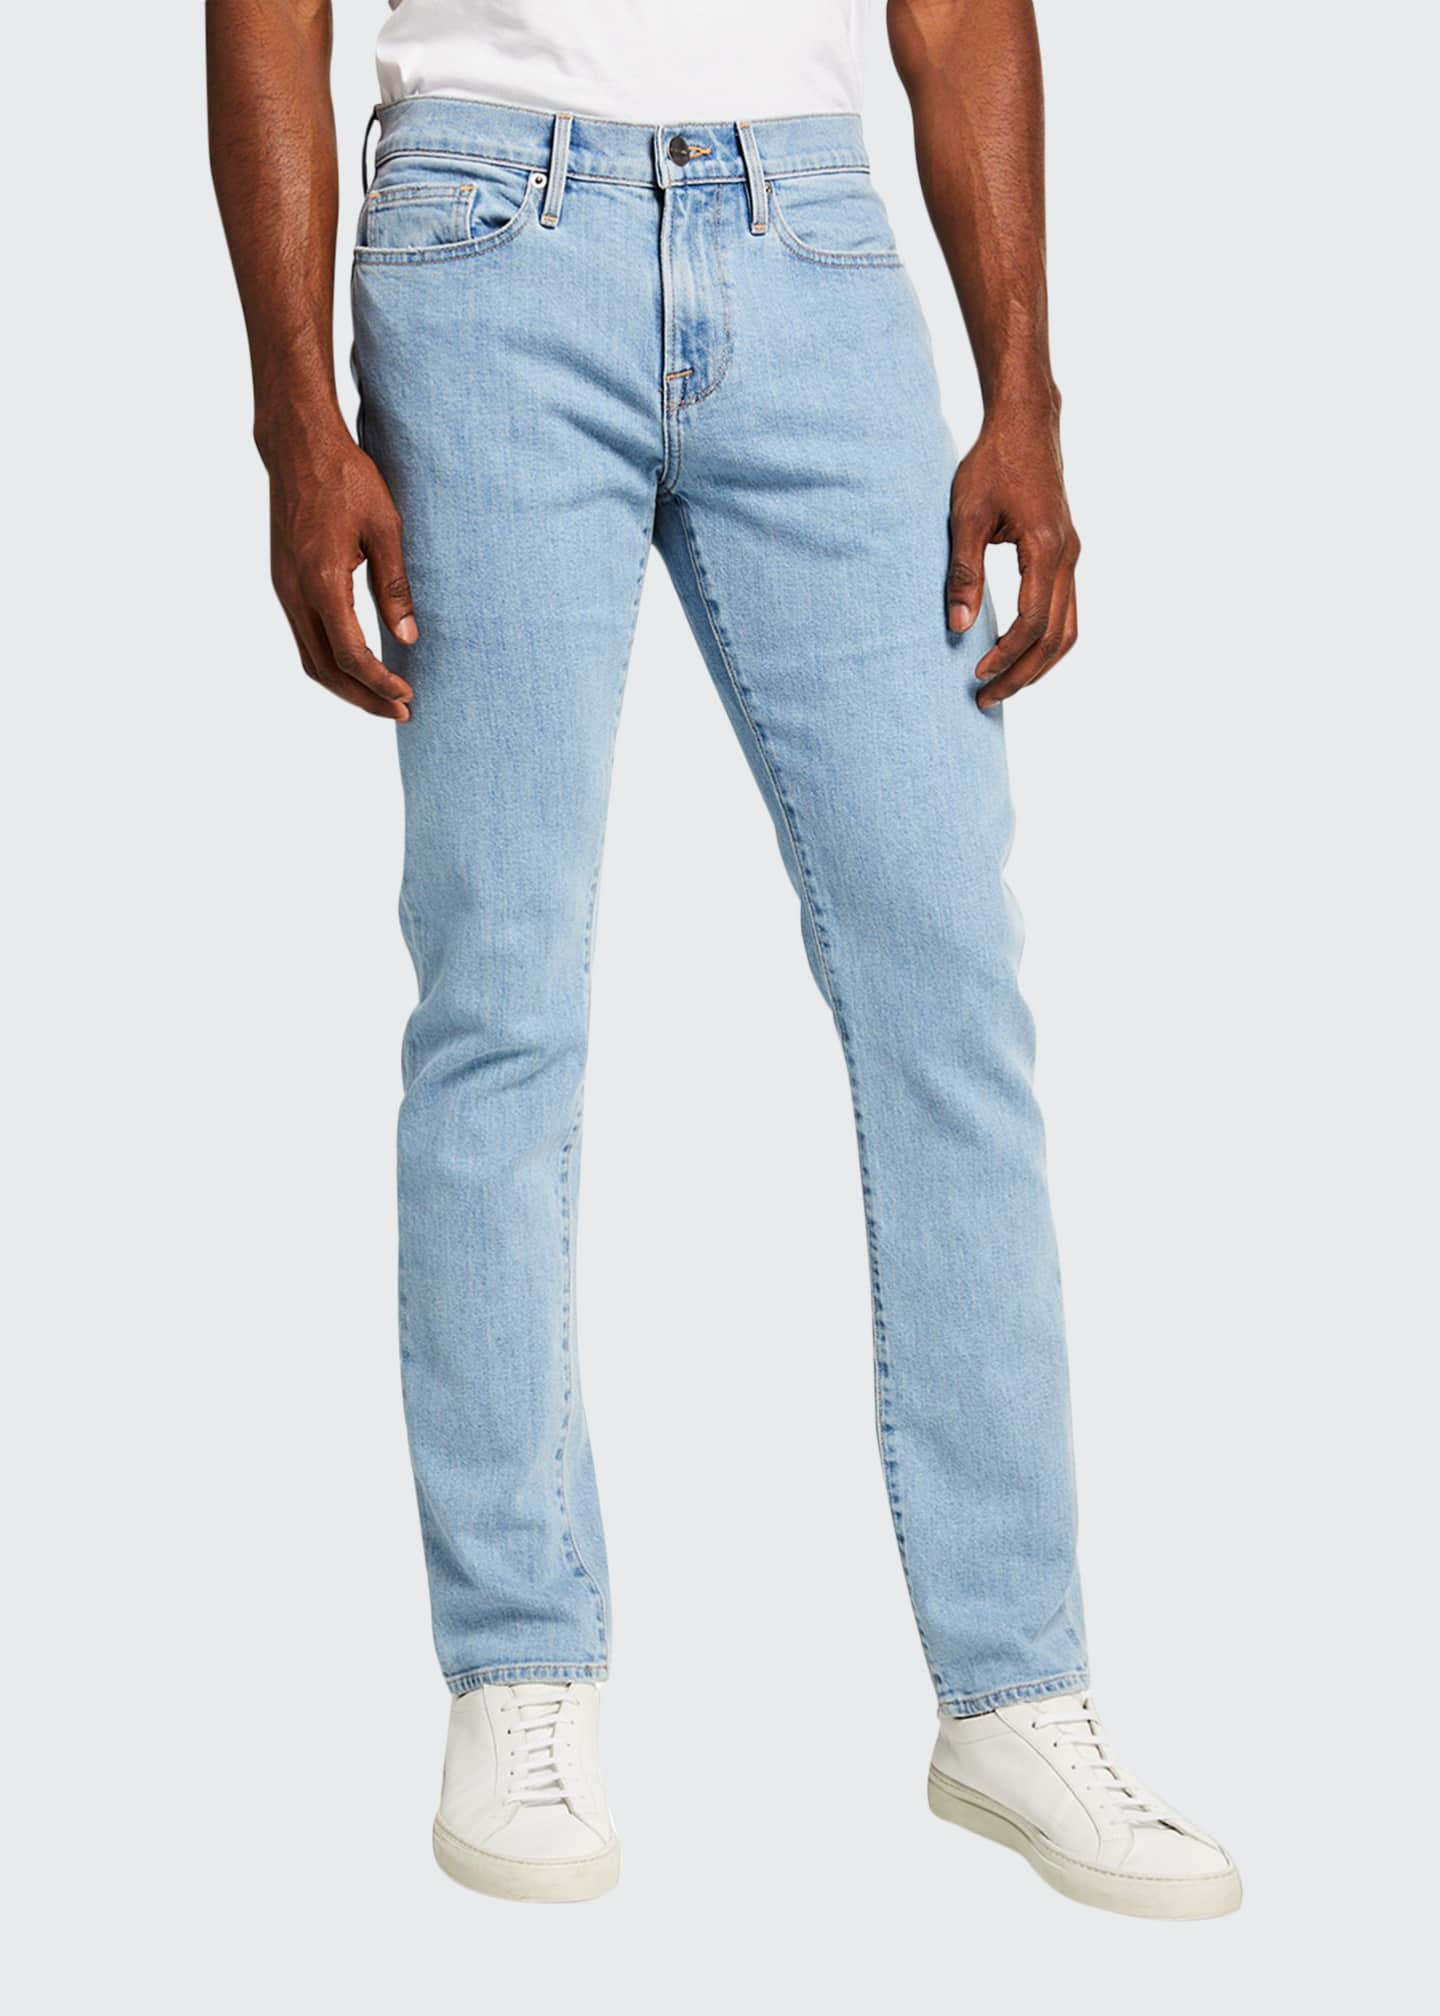 Image 1 of 3: Men's L'Homme Slim Light Wash Denim Jeans